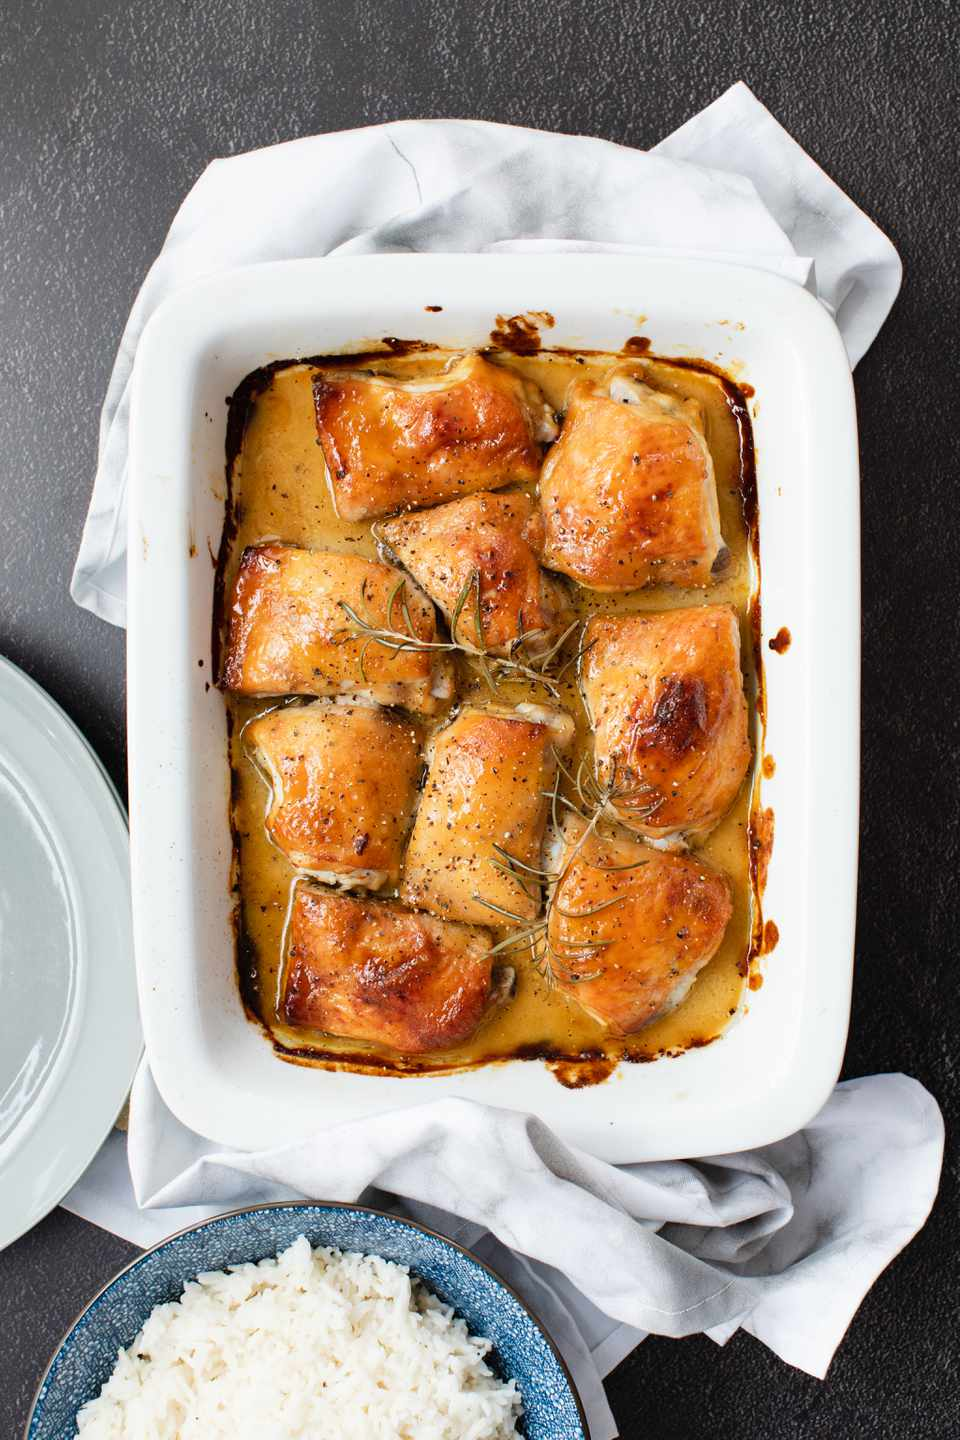 Overhead view of baked chicken in a casserole dish.